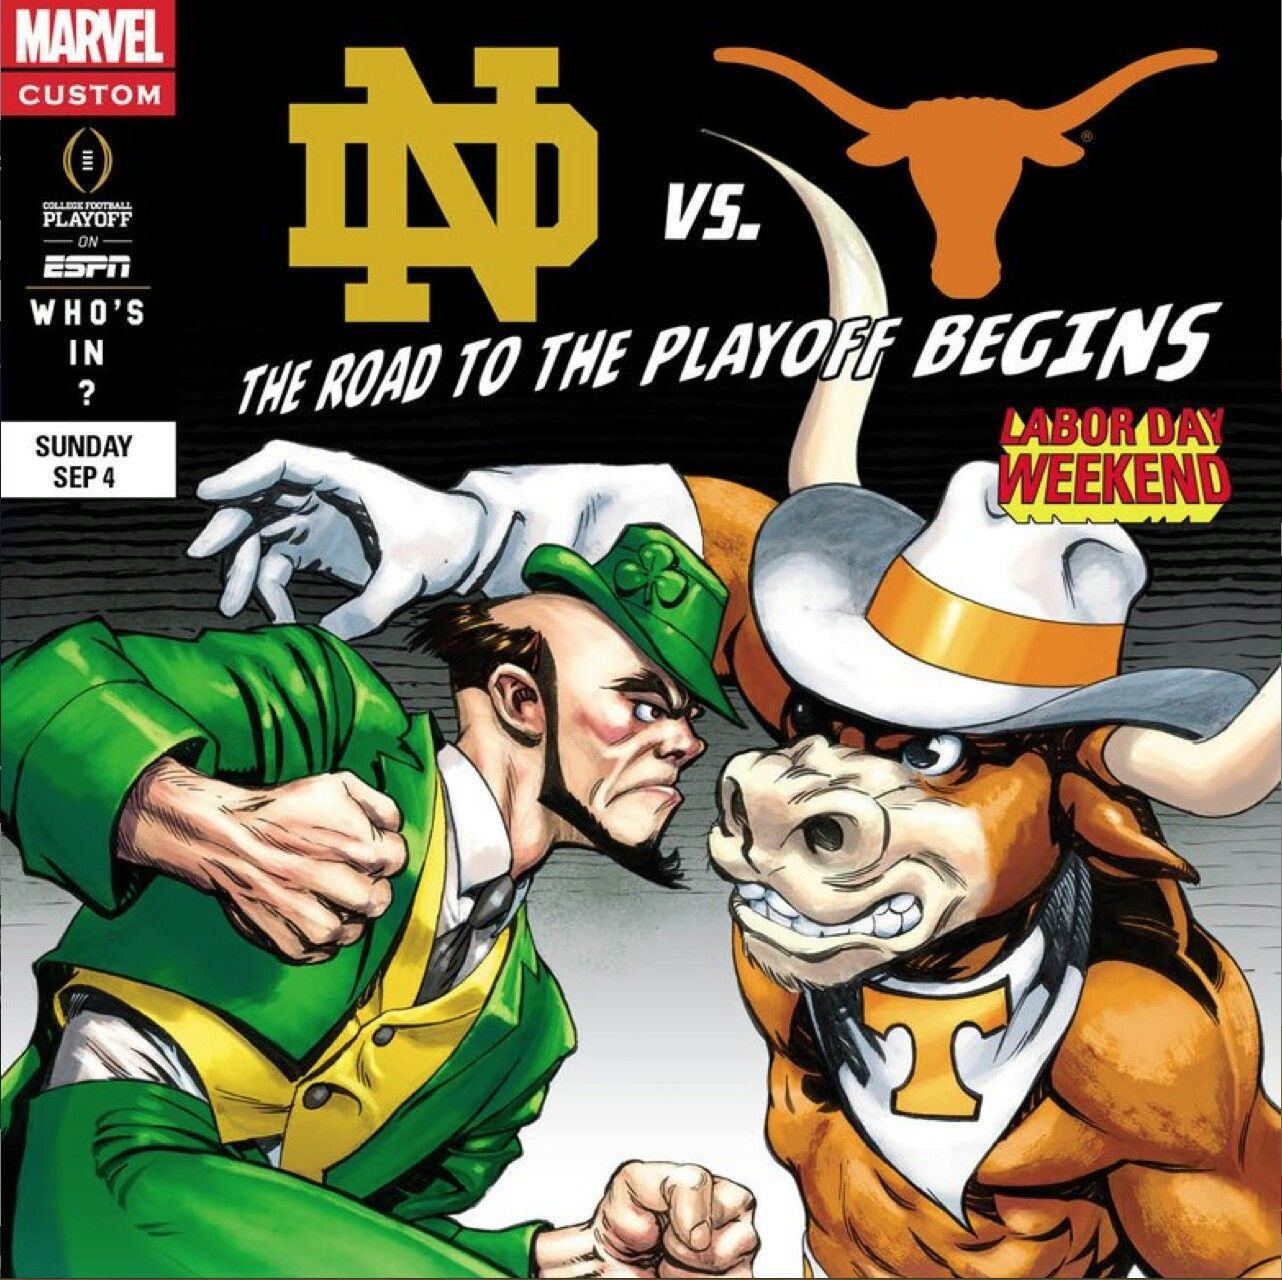 Pin by Shane Rone on Texas Longhorns Football Comic book